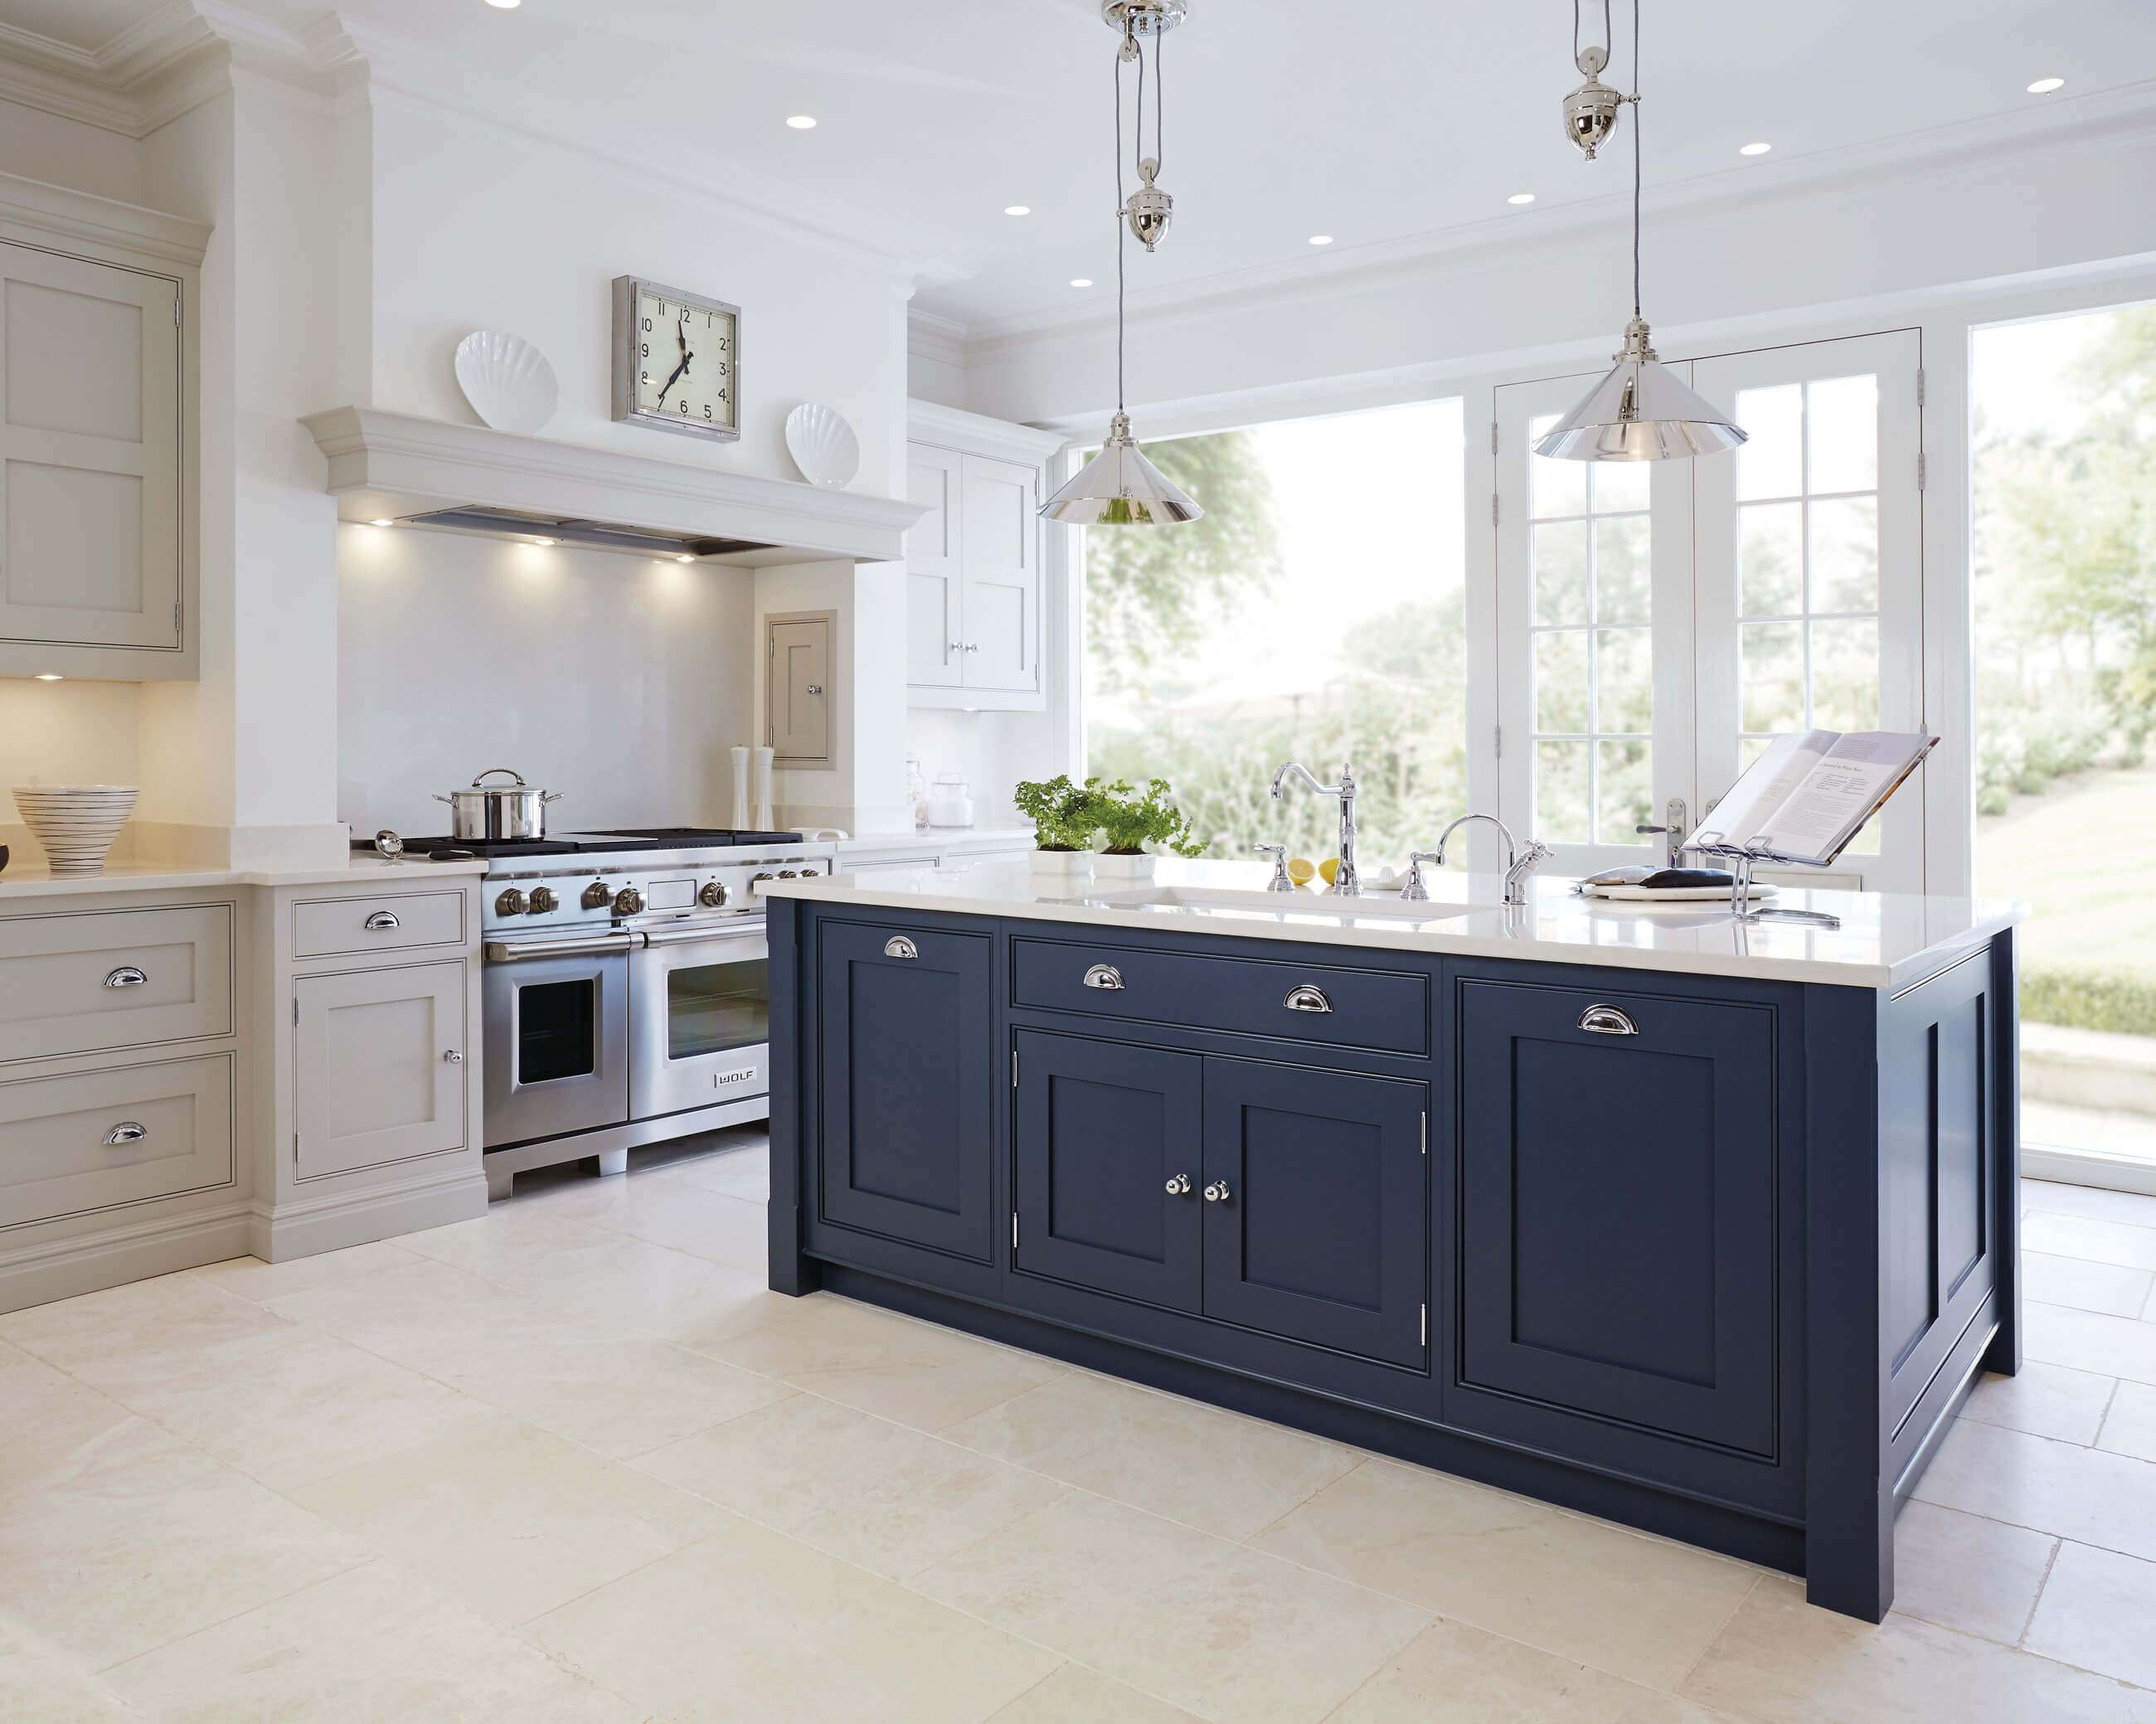 5 important factors that influence the value of your kitchen